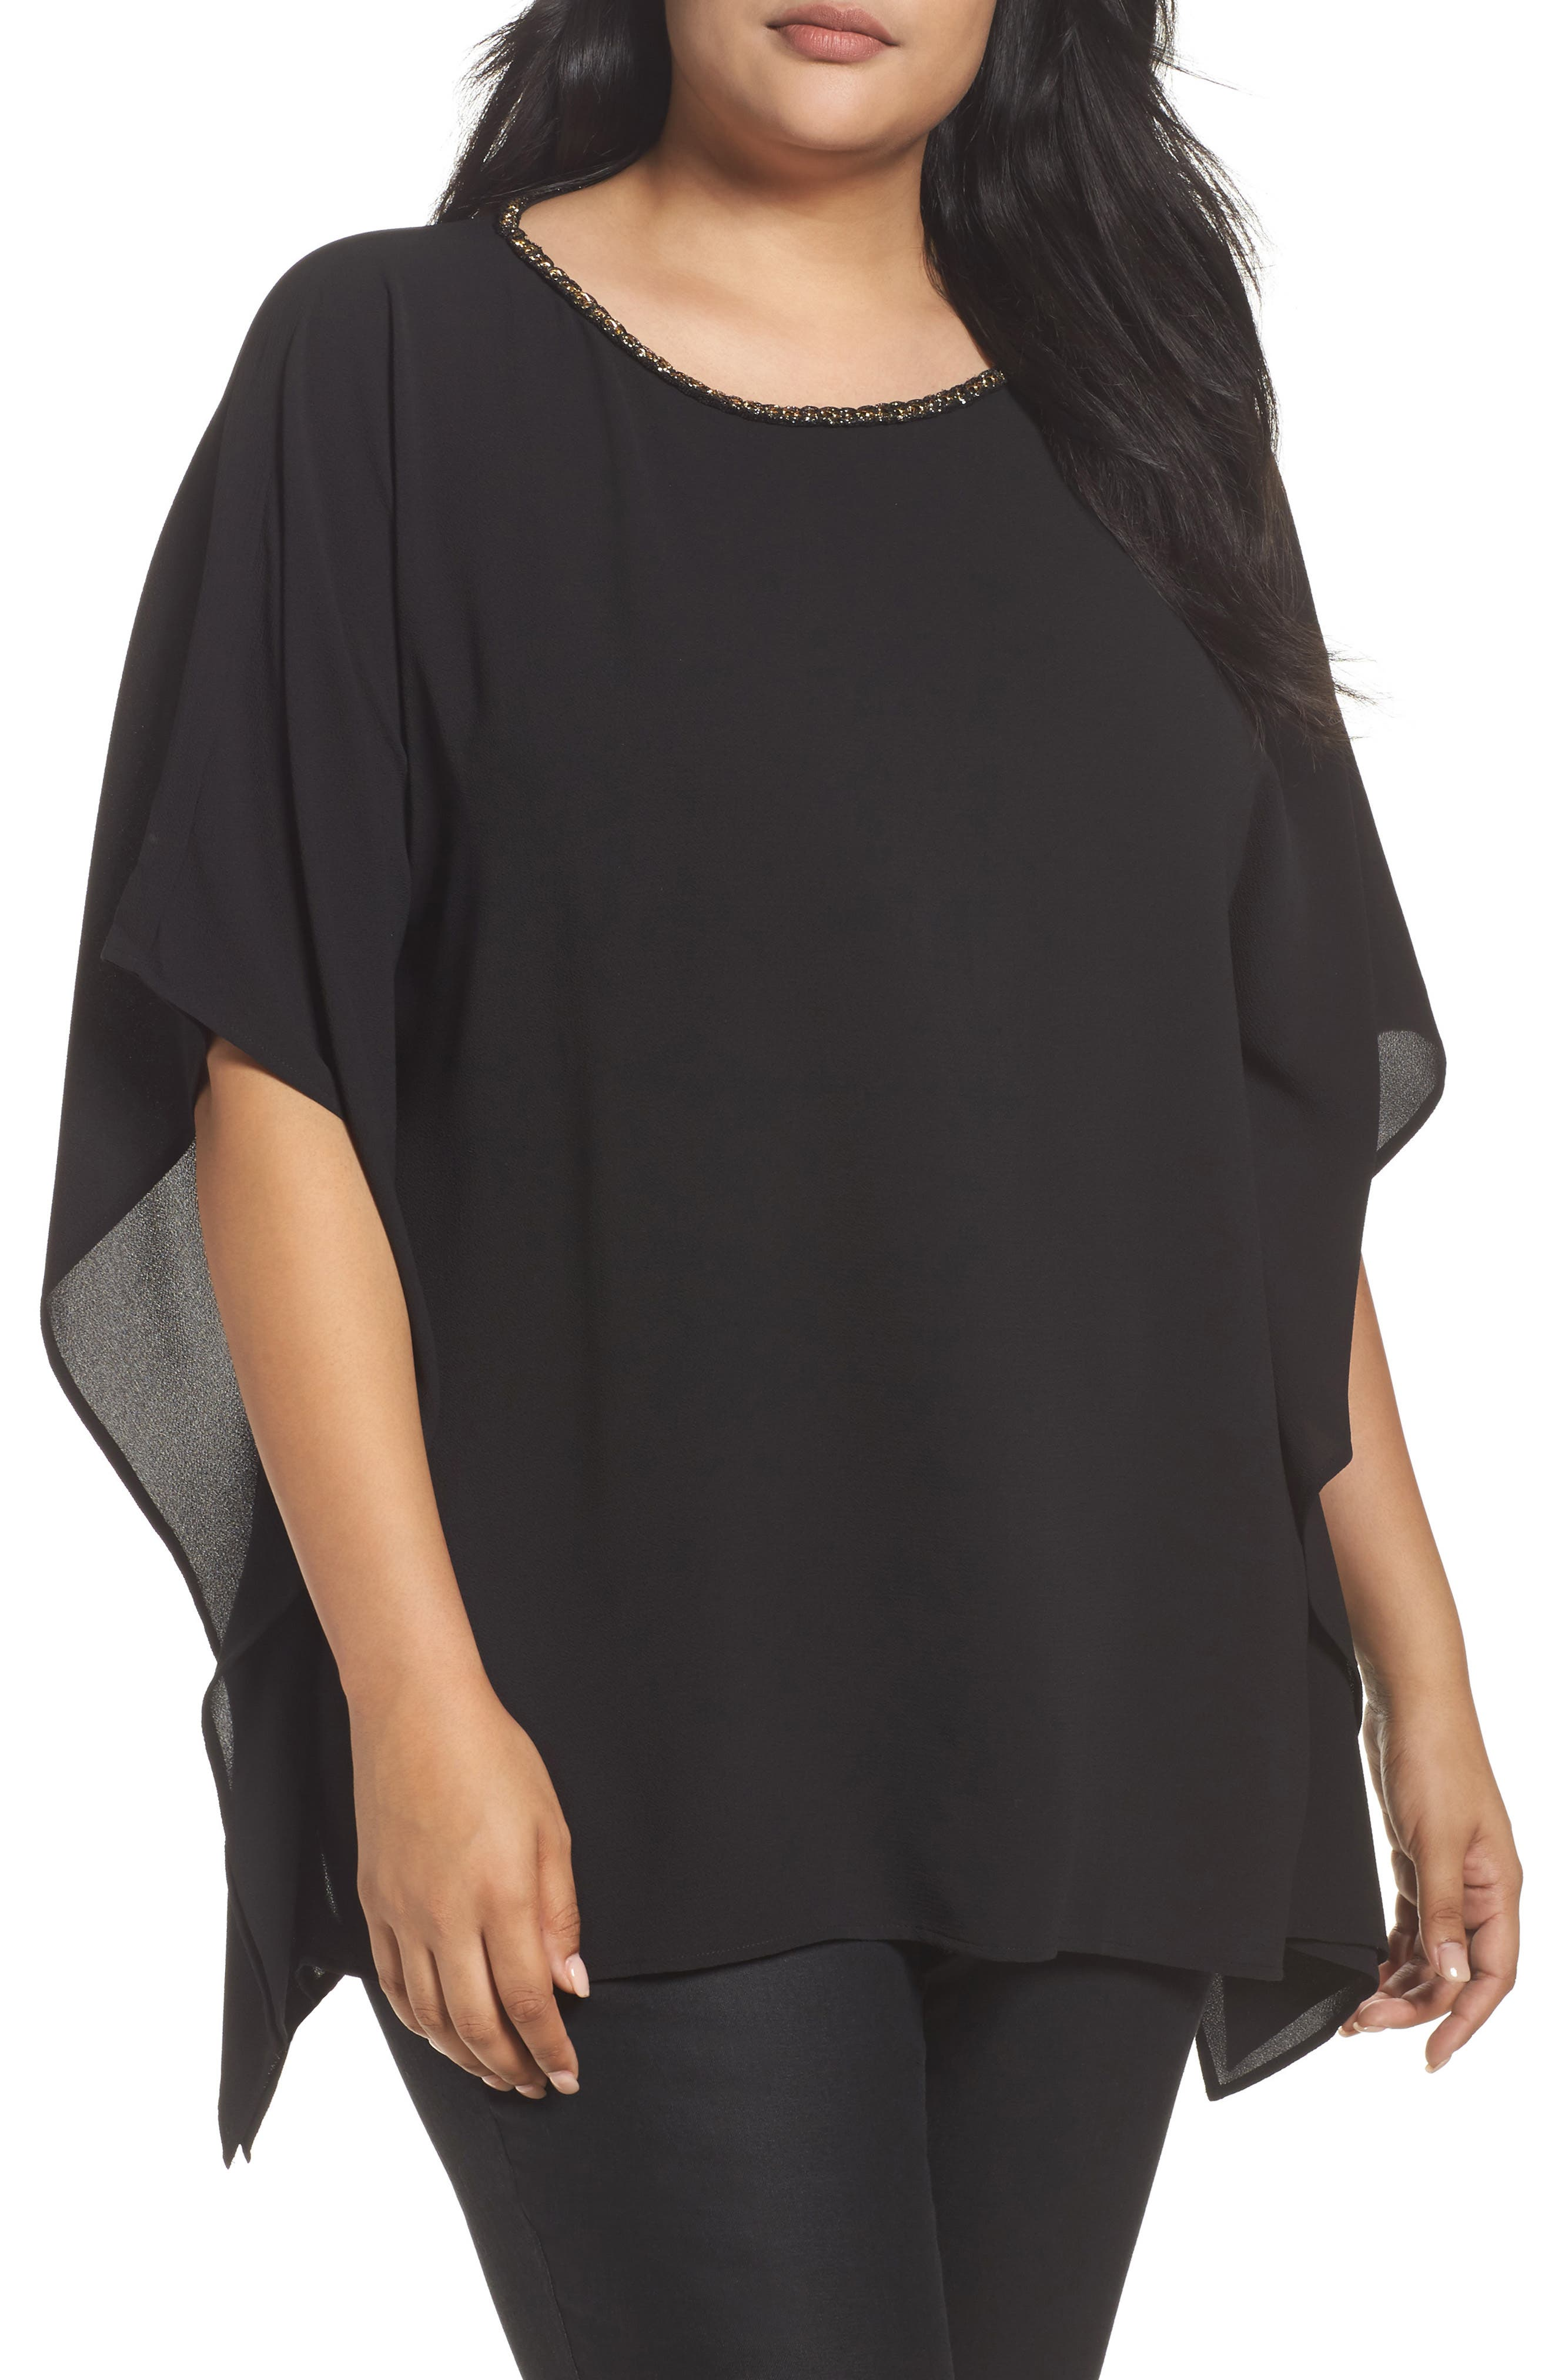 Alternate Image 1 Selected - MICHAEL Michael Kors Chain Neck Top (Plus Size)